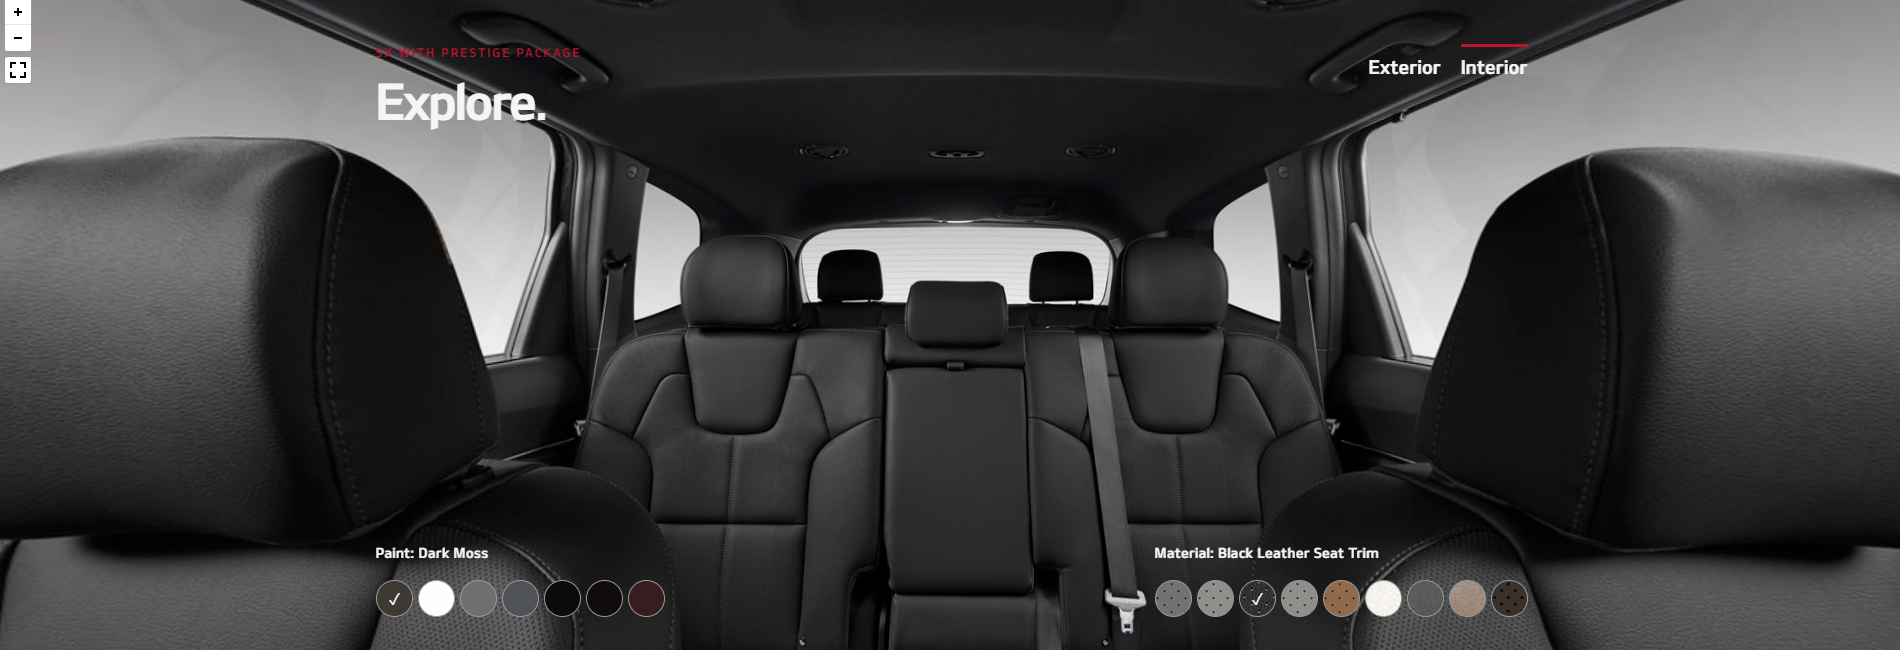 2020 Kia Telluride Black Leather Seat Trim